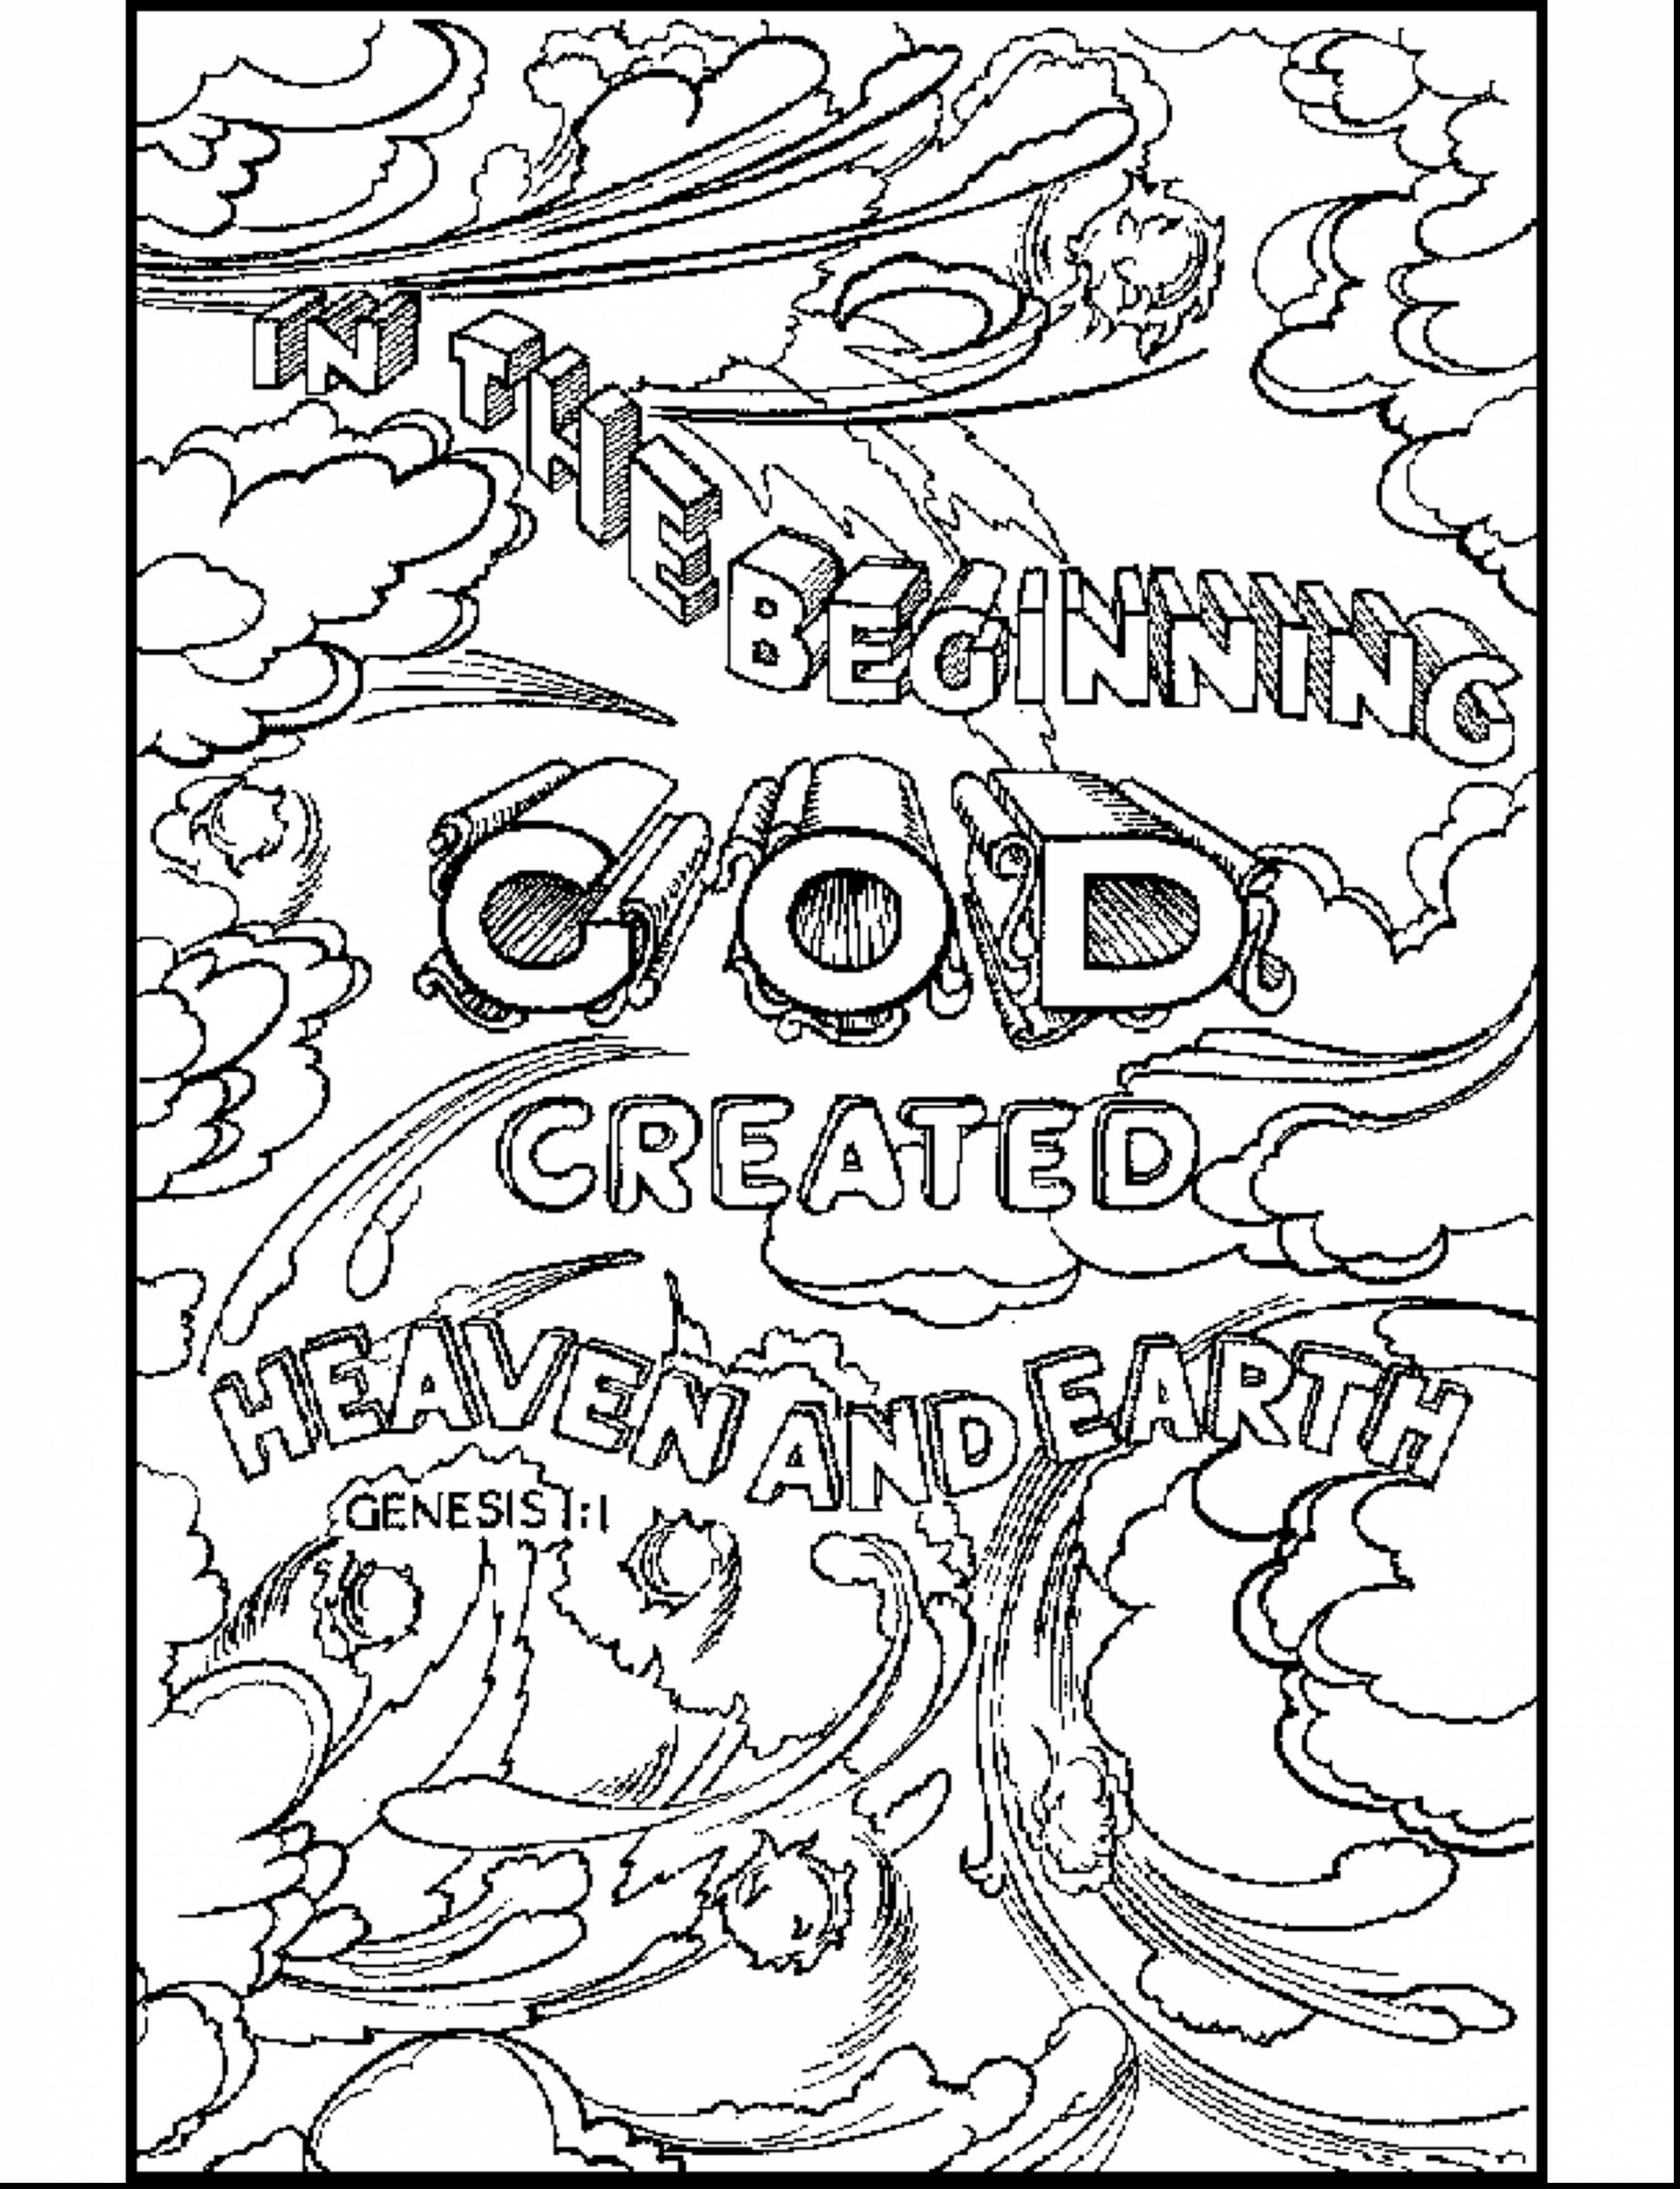 Coloring Pages : Free Printable Bible Story Coloring Pages Page With - Free Printable Bible Story Coloring Pages